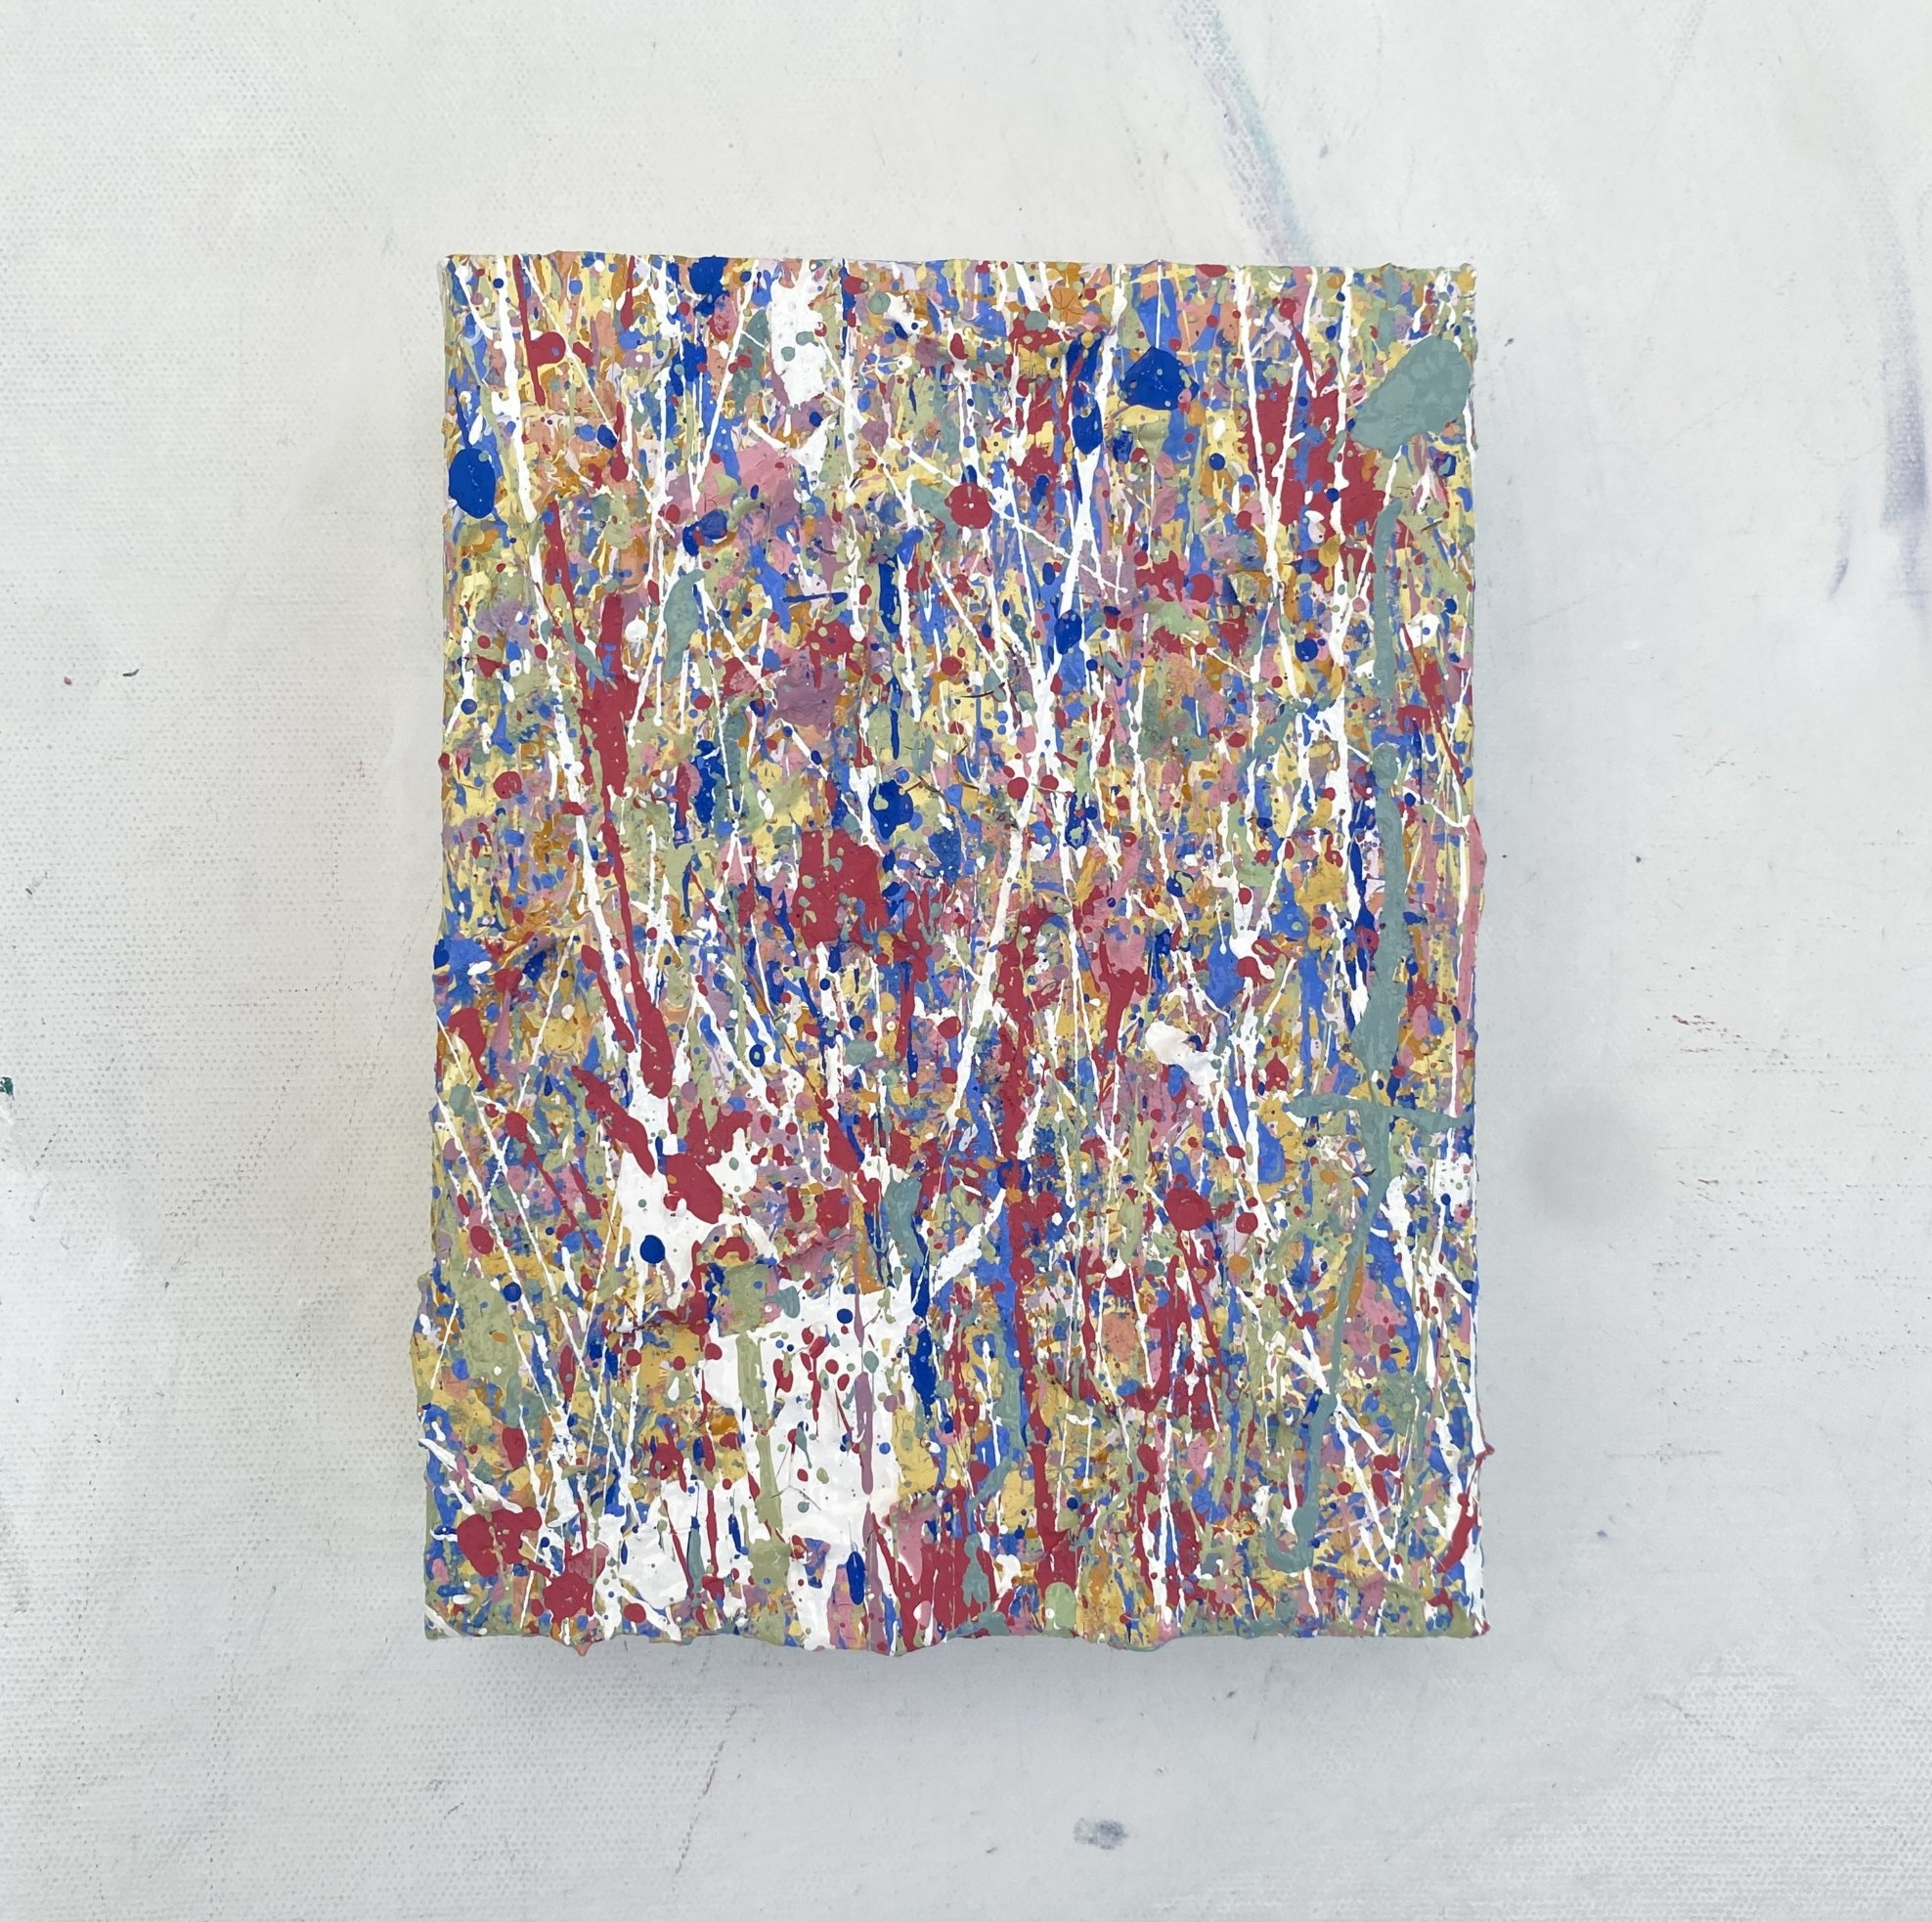 detailed photography of a painting elements seven a textured artworks created using plastic free environmentally friendly paints by somerset artist emily duchscherer kirk